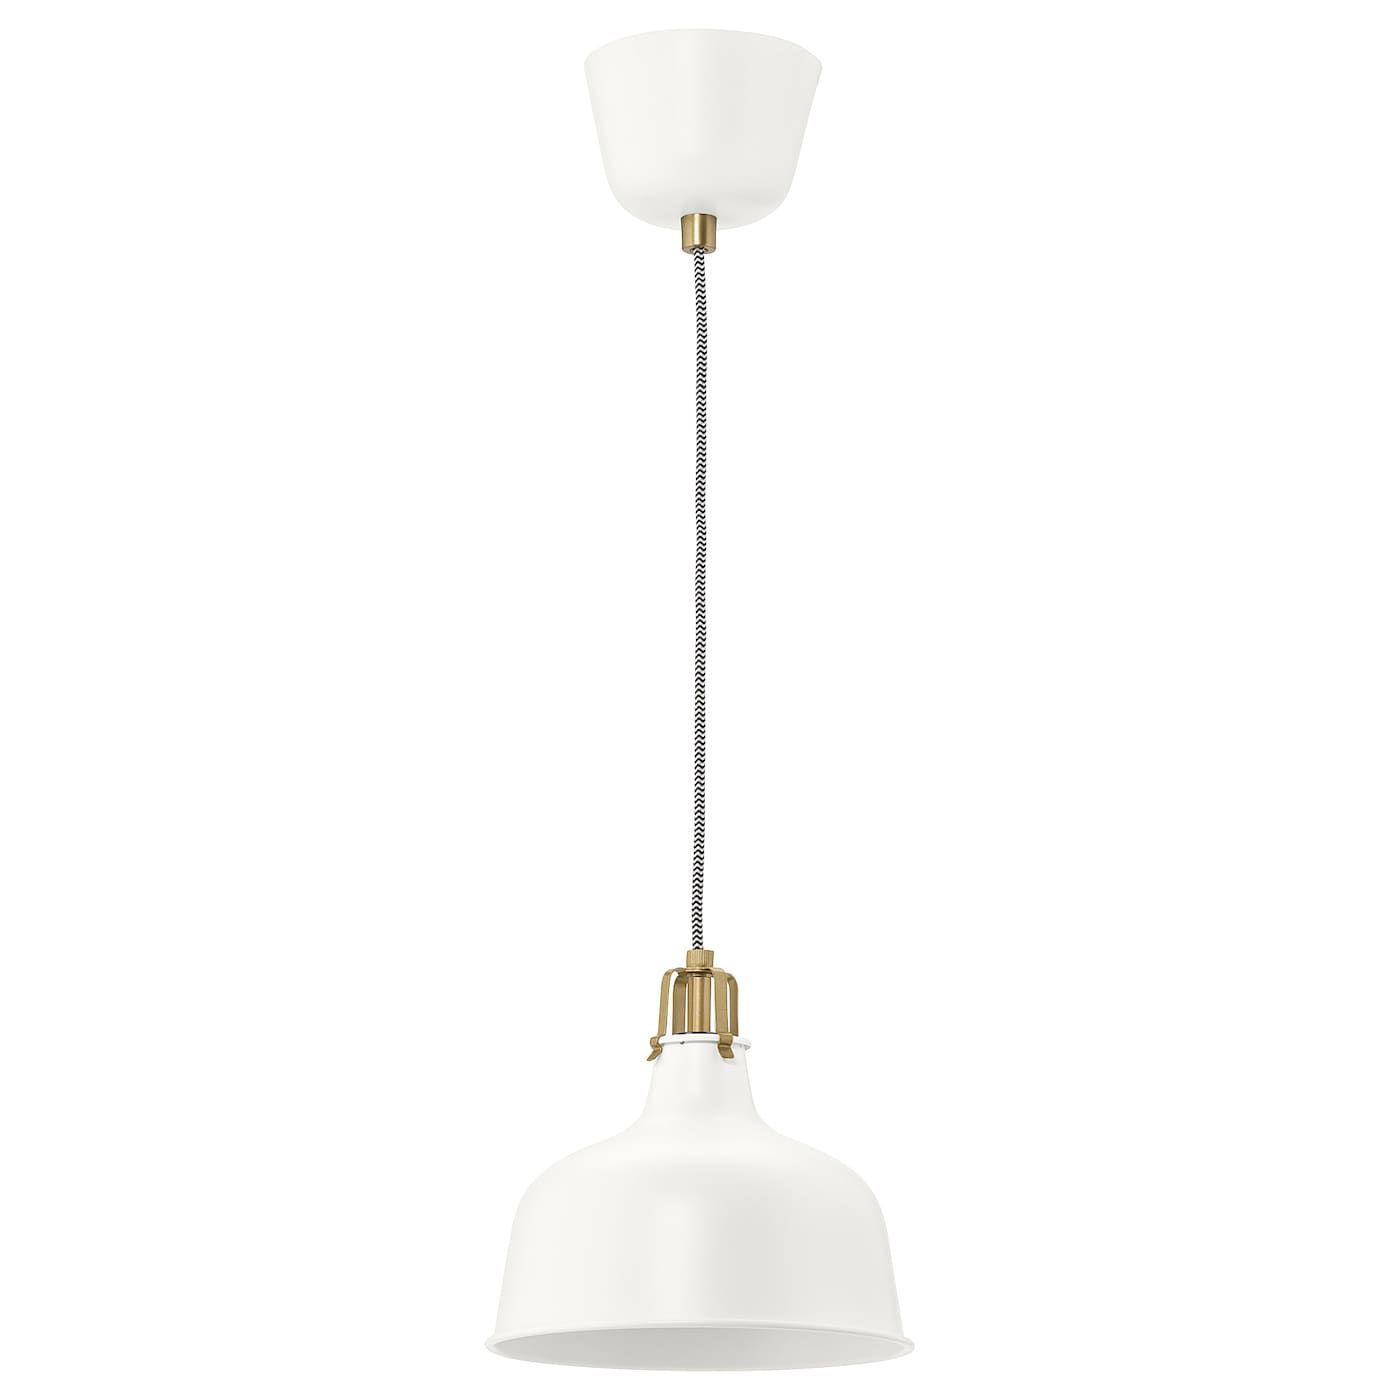 Ikea Us Furniture And Home Furnishings Pendant Lamp Lamp Ikea Ranarp